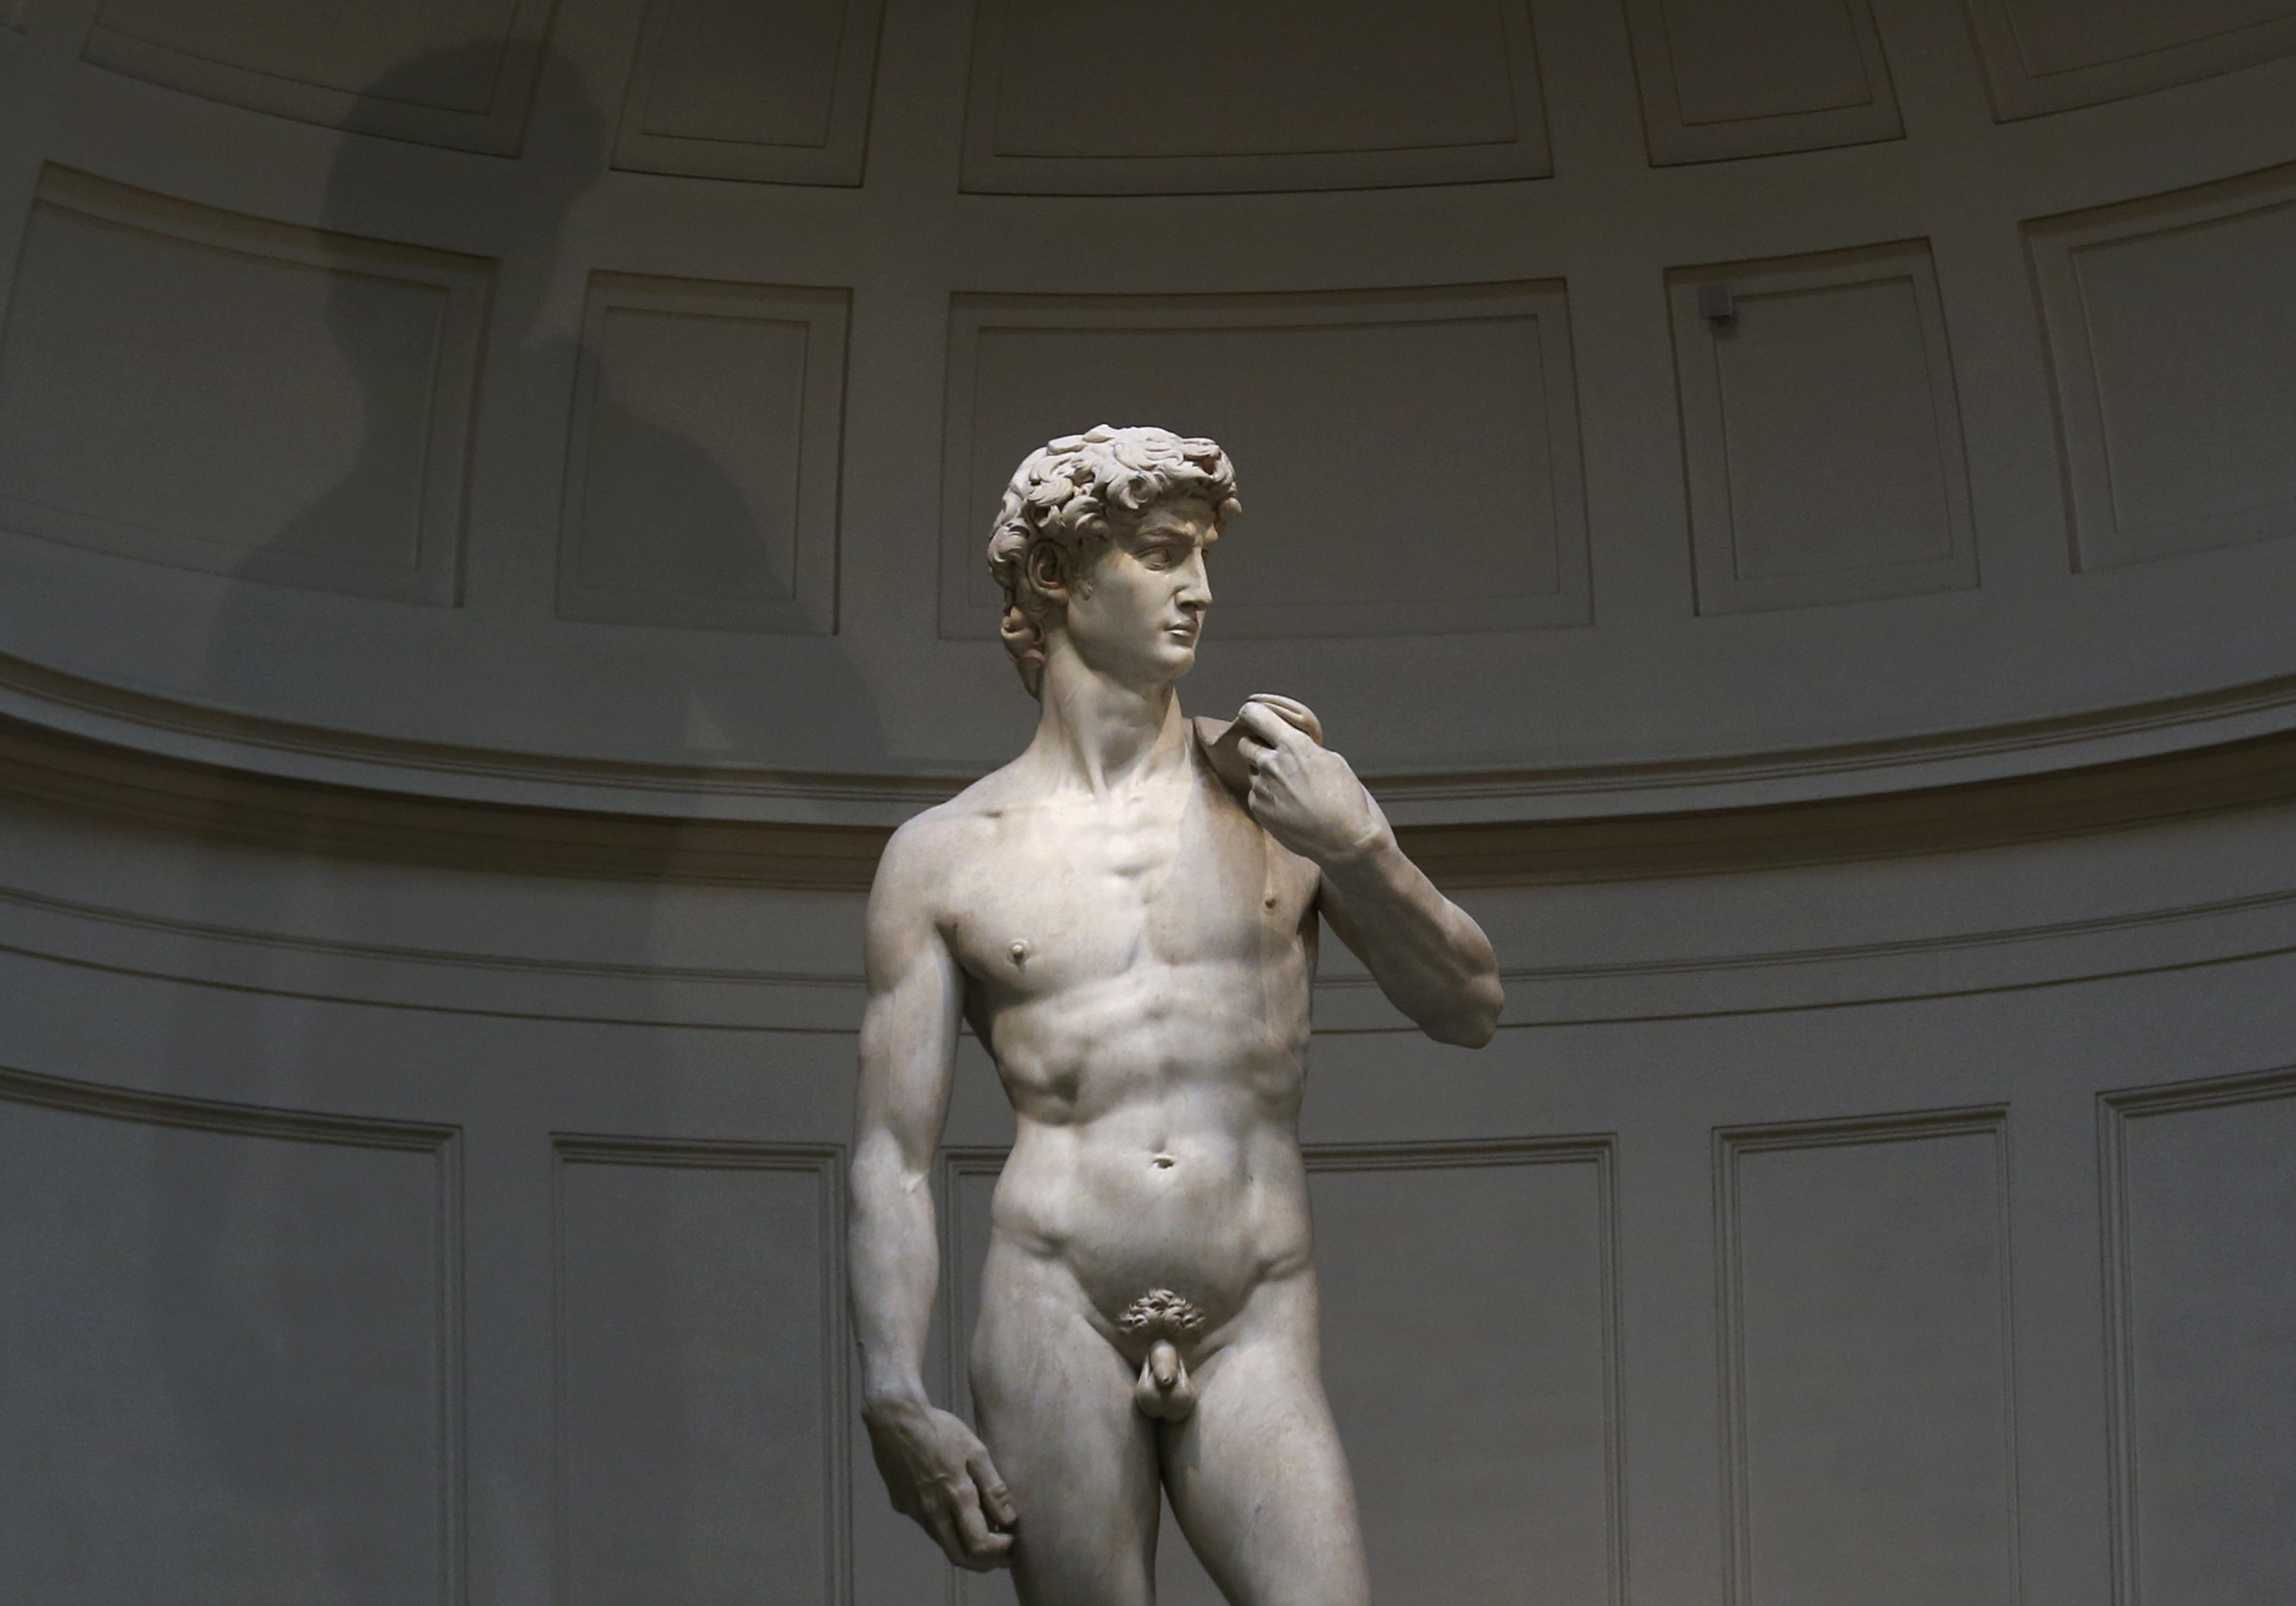 Michelangelo's statue of David is seen before a joint news conference by Italy's Prime Minister Matteo Renzi and Germany's Chancellor Angela Merkel at the Galleria dell'Accademia in Florence January 23, 2015. REUTERS/Alessandro Bianchi (ITALY - Tags: POLITICS SOCIETY) - GM1EB1N1EJA01